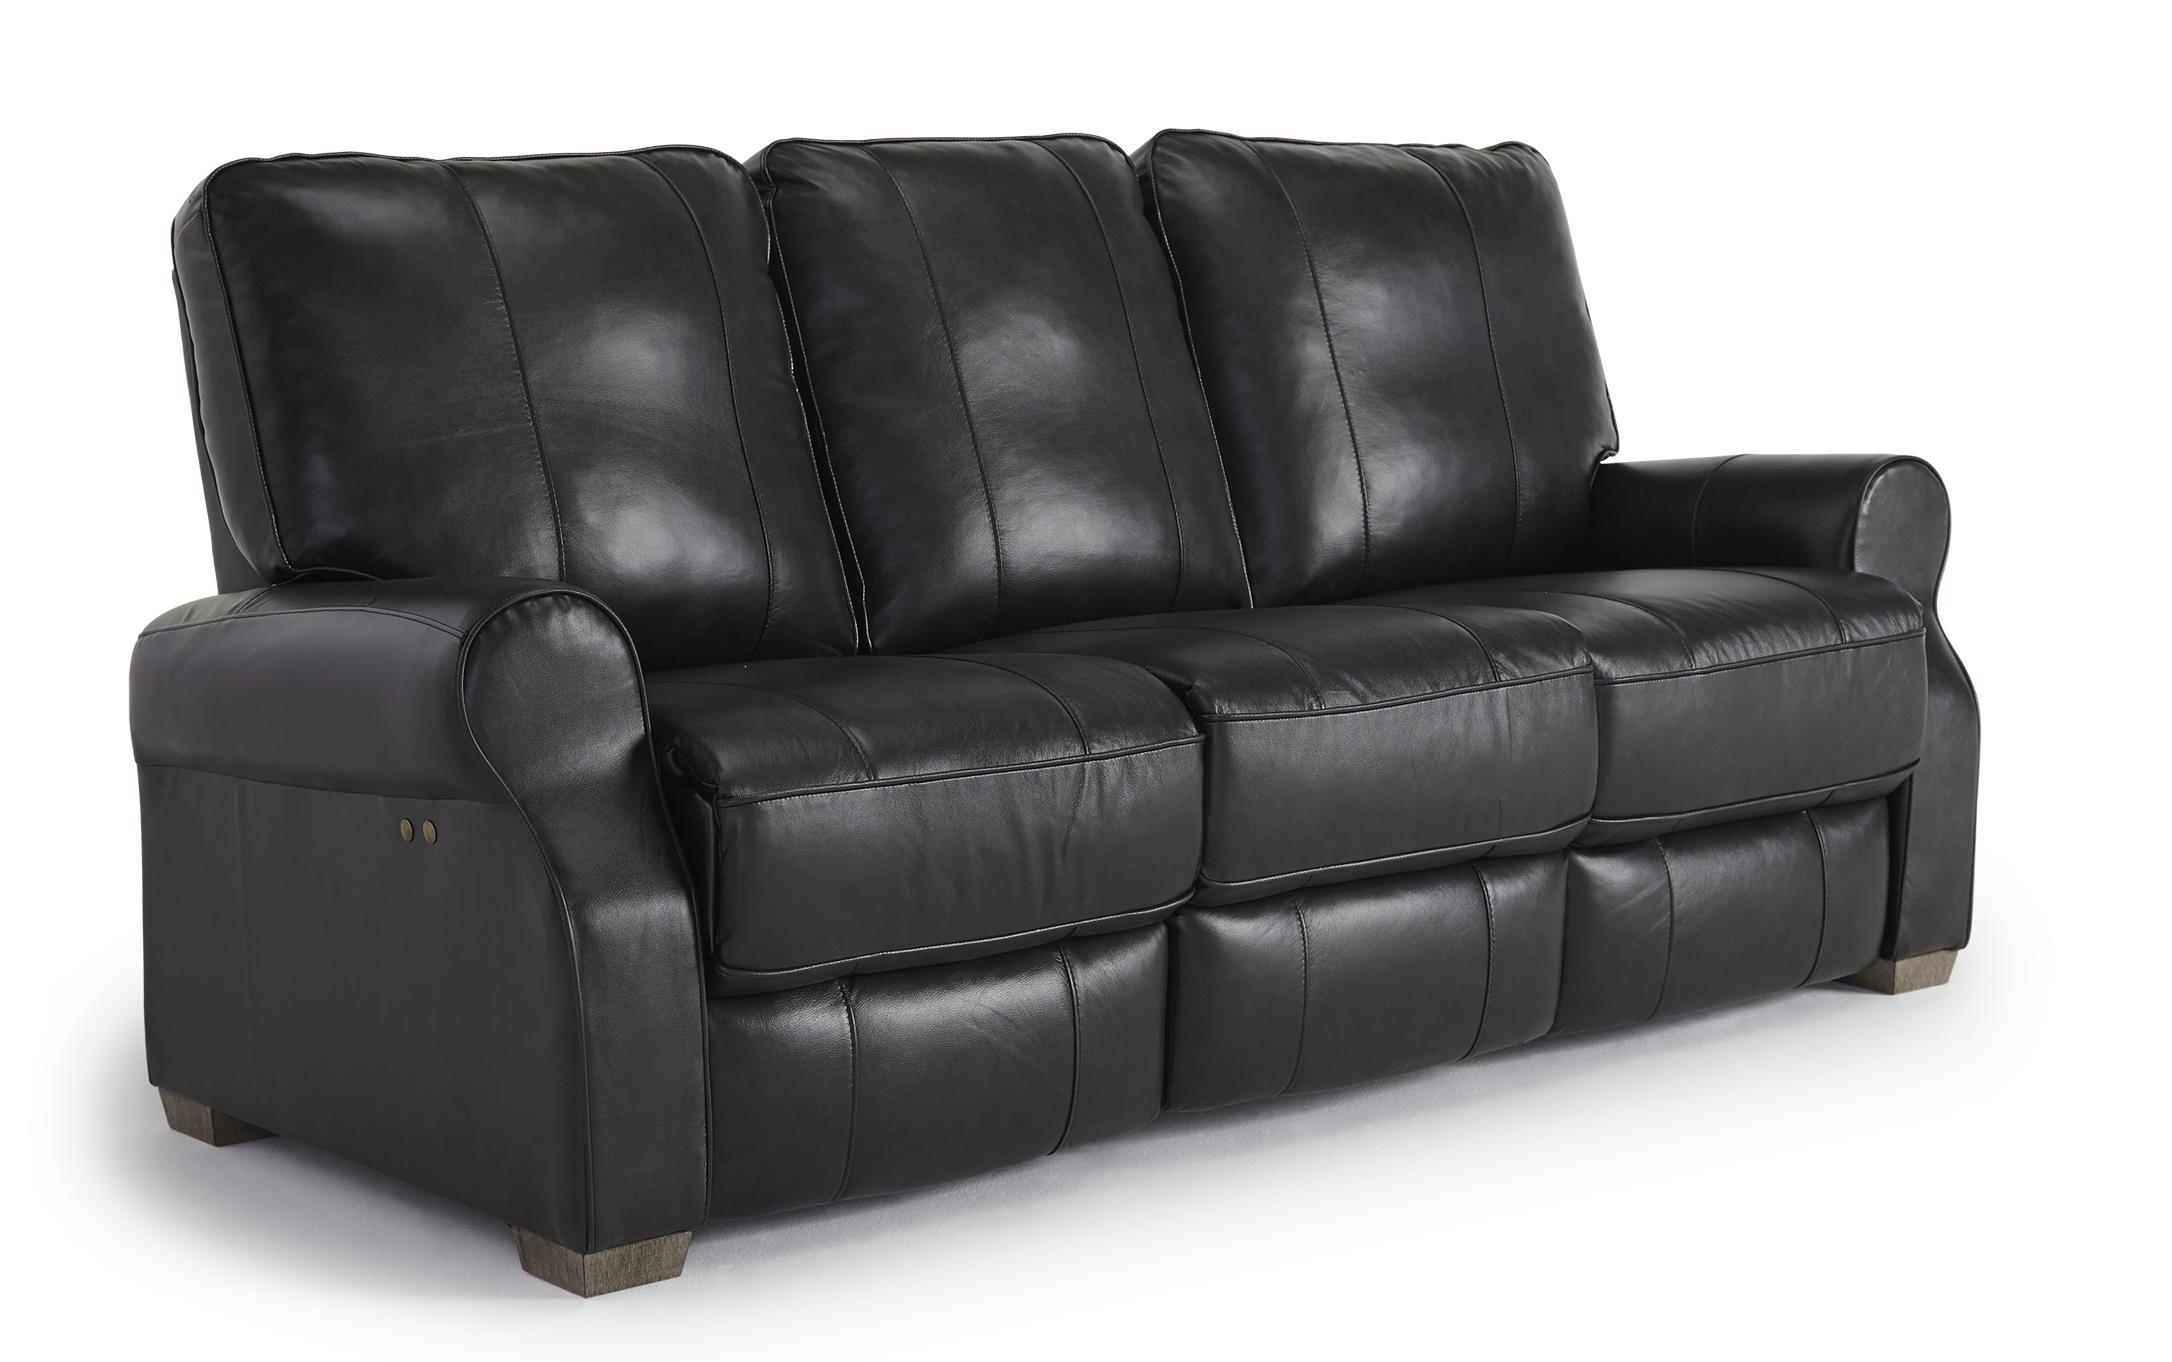 Best Home Furnishings Hattie Power Motion Sofa - Item Number: S905CP2-73213LV